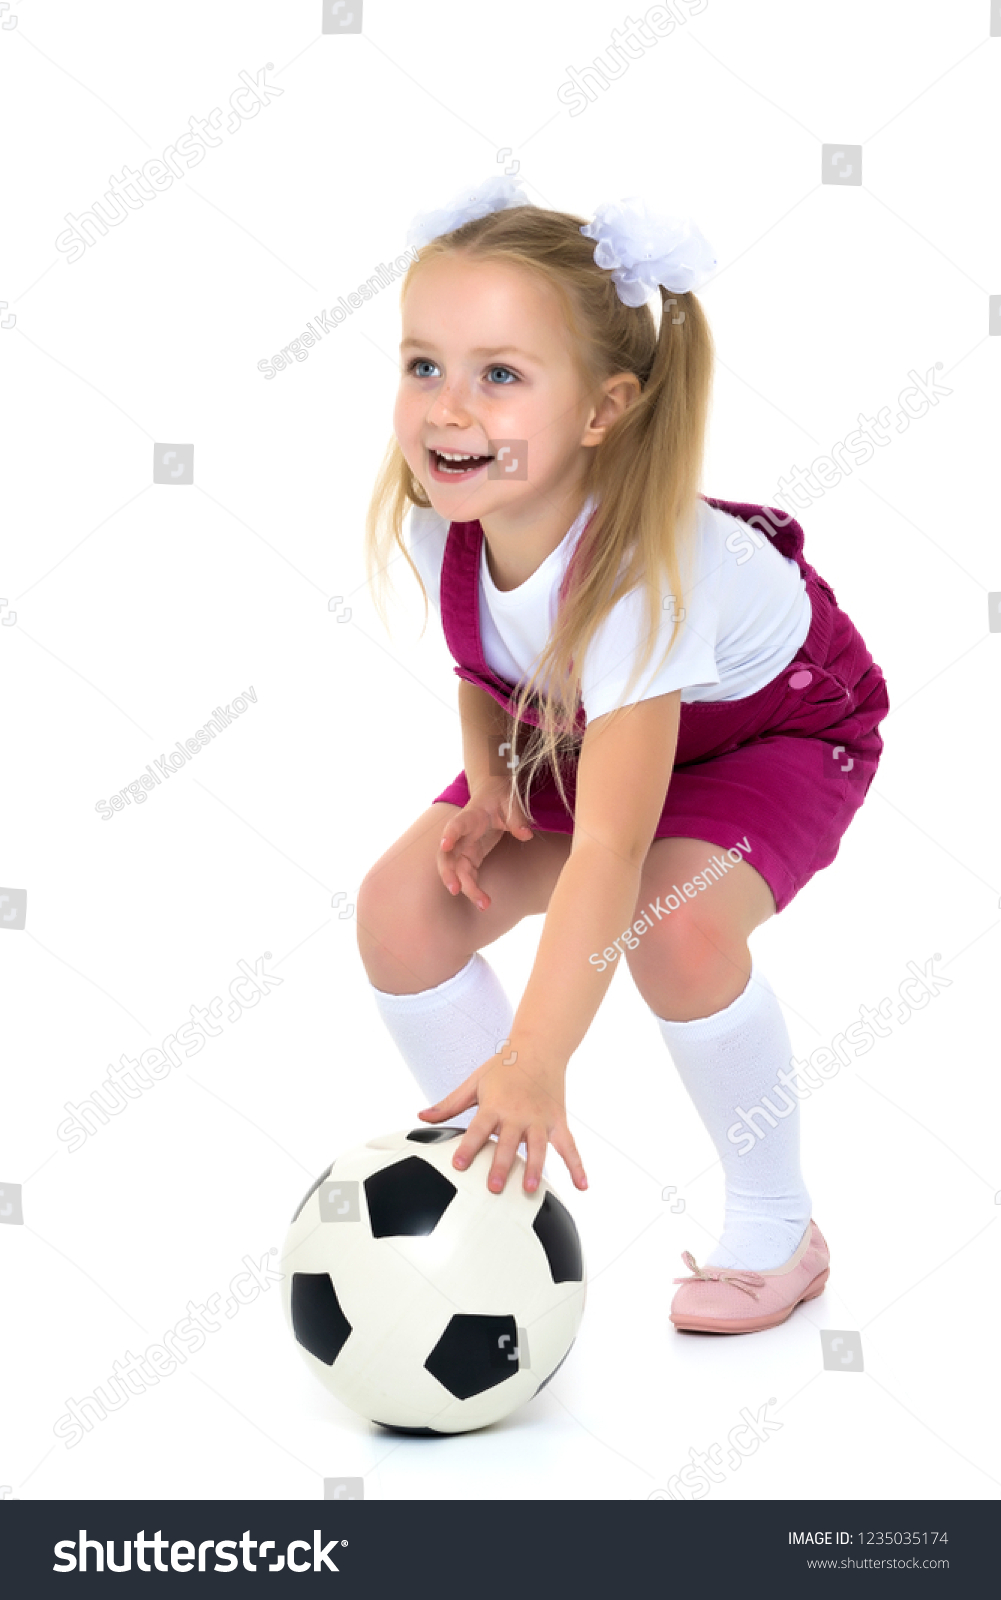 75fef3b31 Adorable little girl with a soccer ball. The concept of children s sports